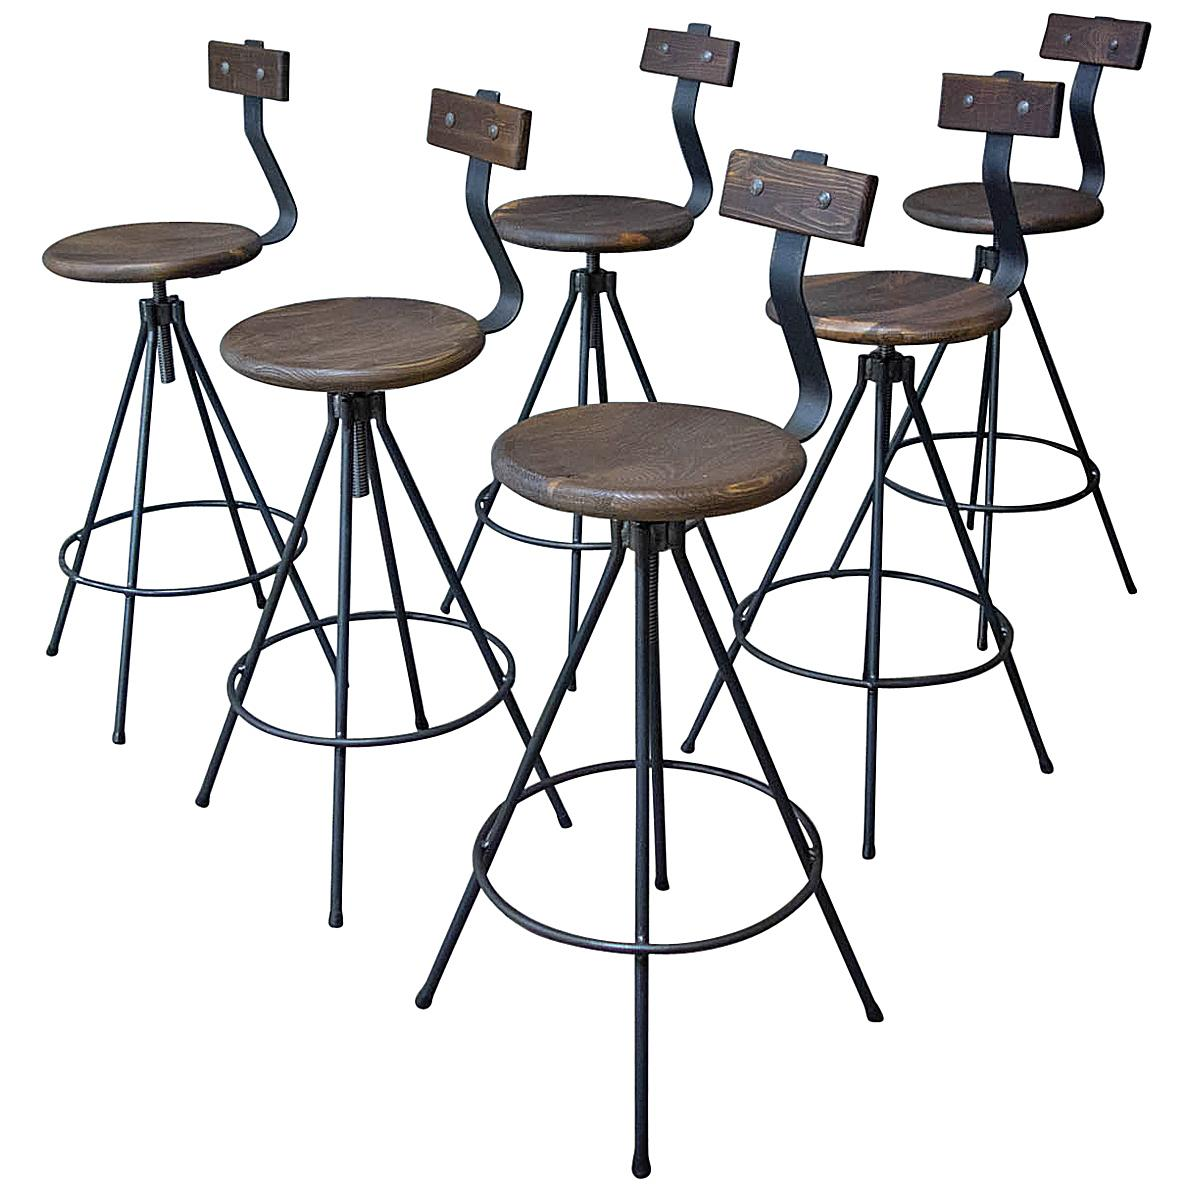 Incroyable Handmade Industrial Bar Stools With Back And Spindle